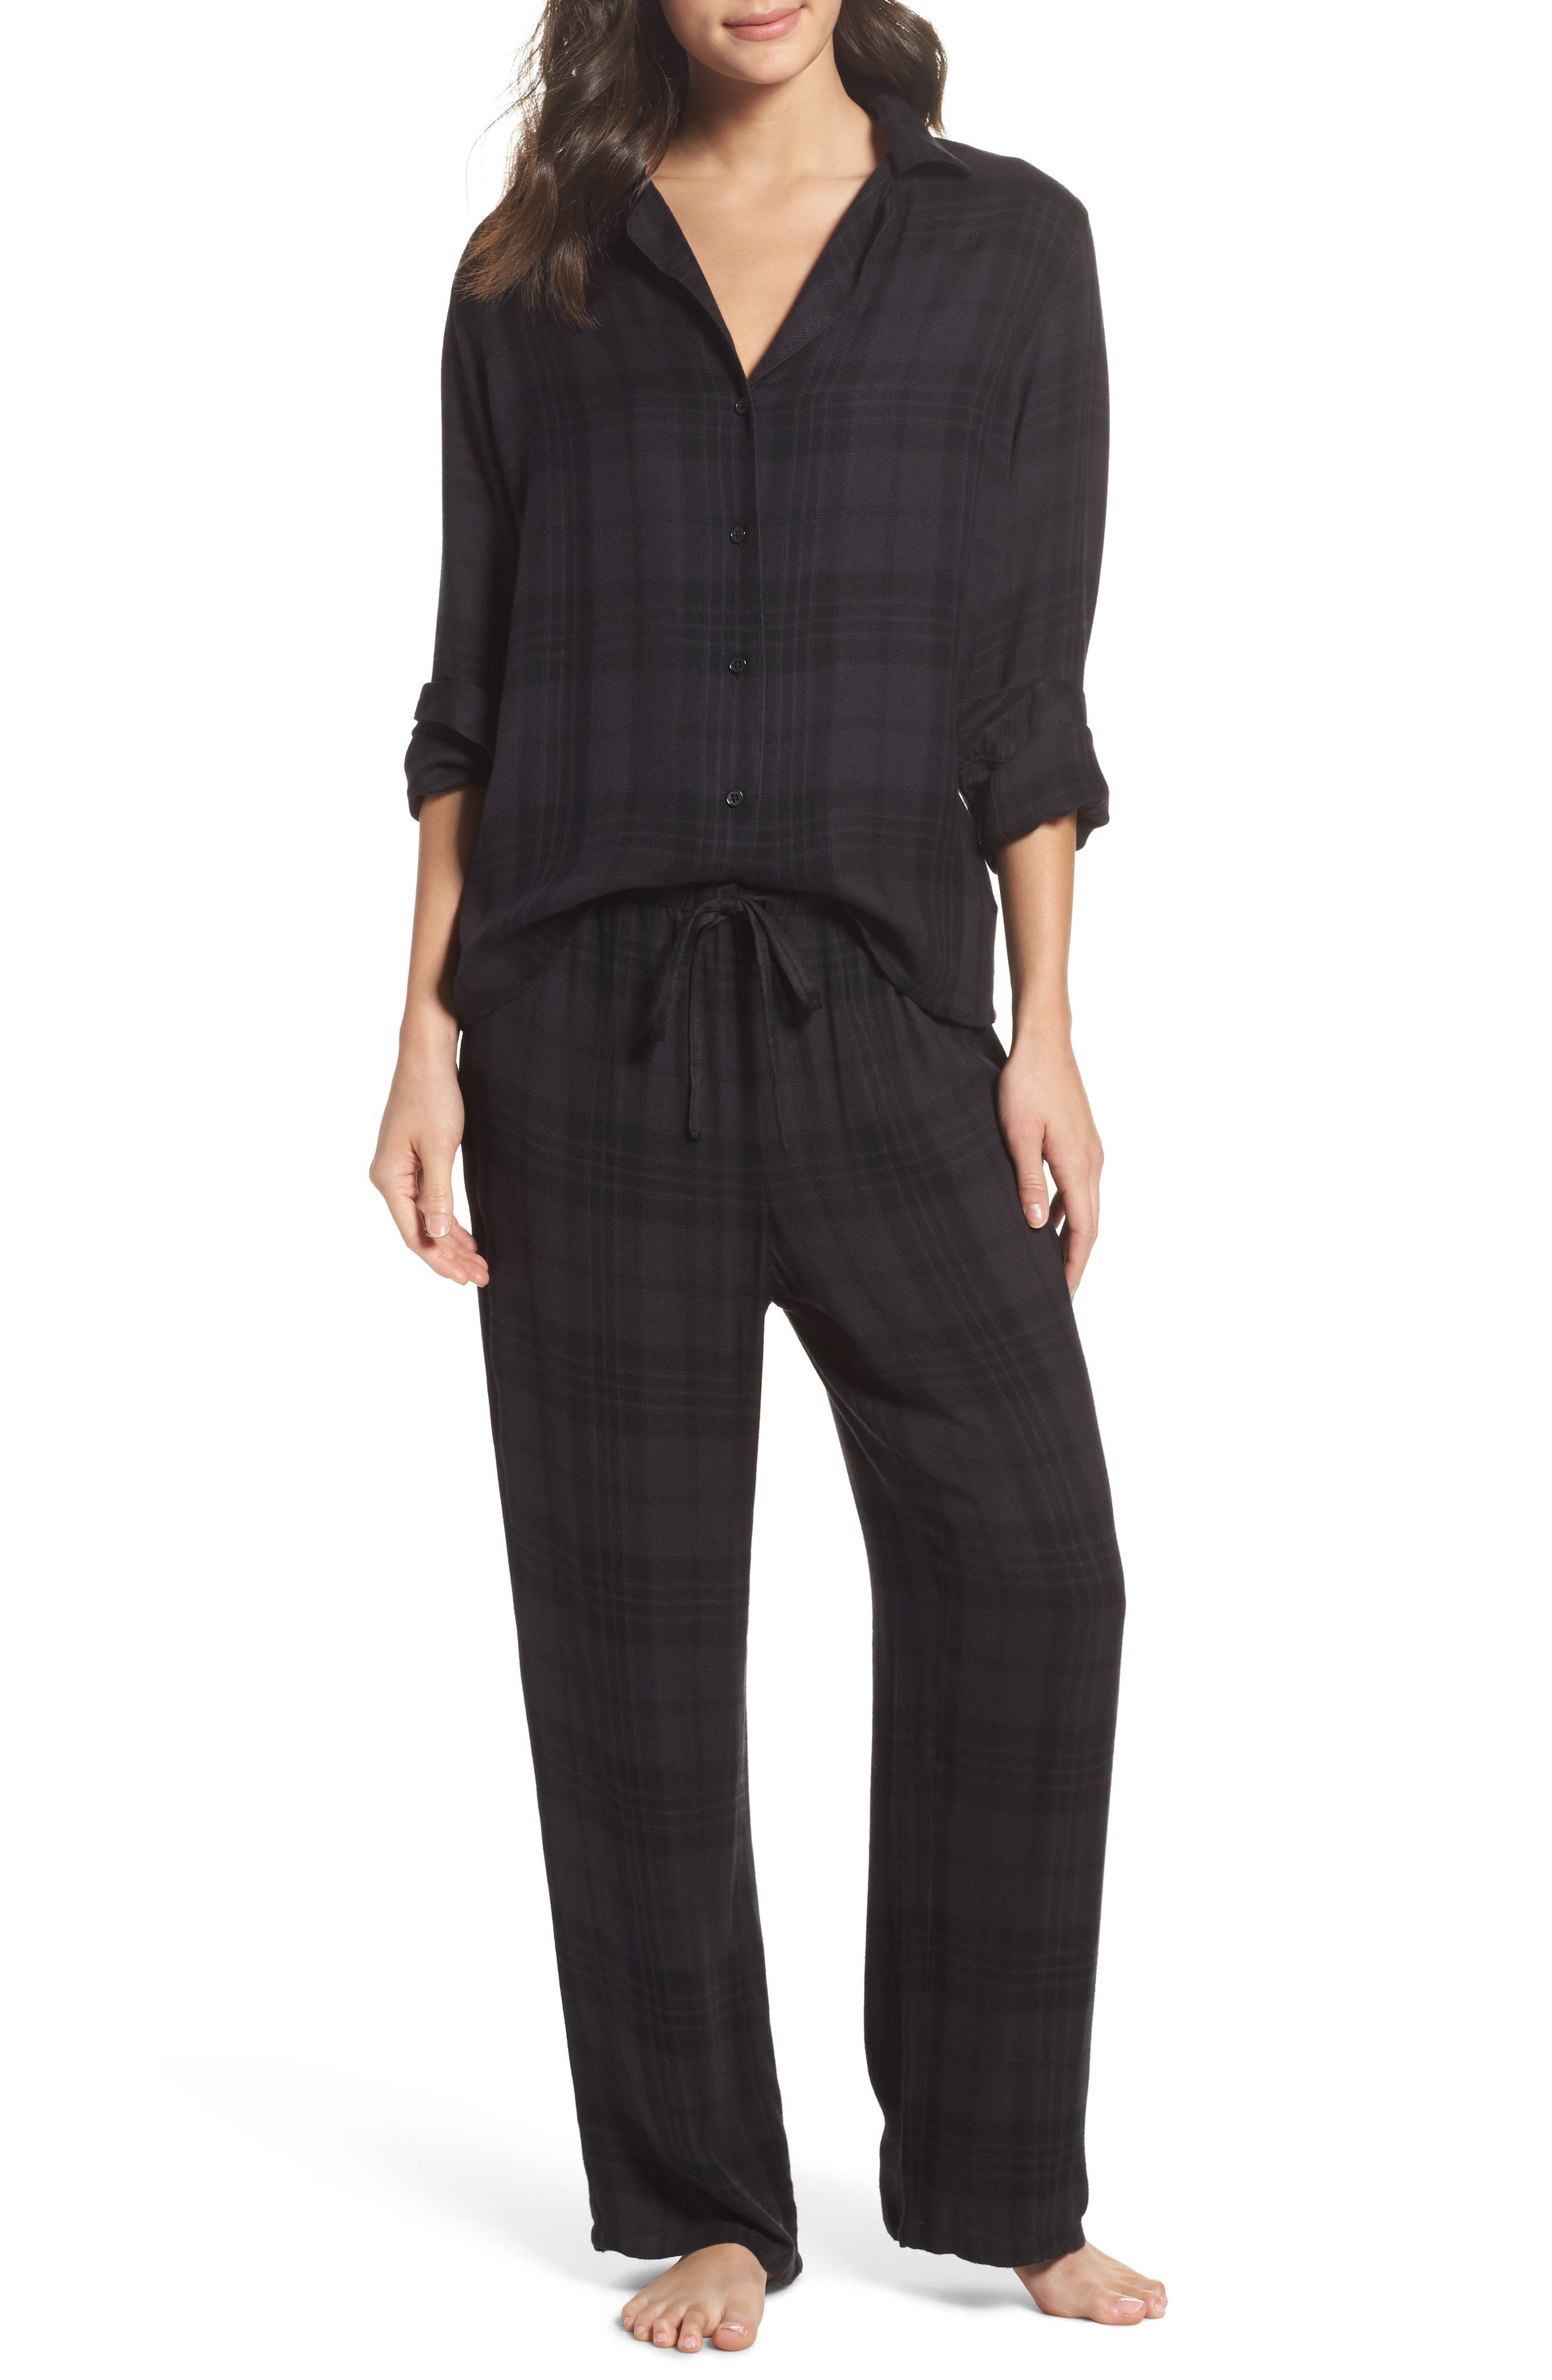 Plaid Pajamas,                         Main,                         color, 001